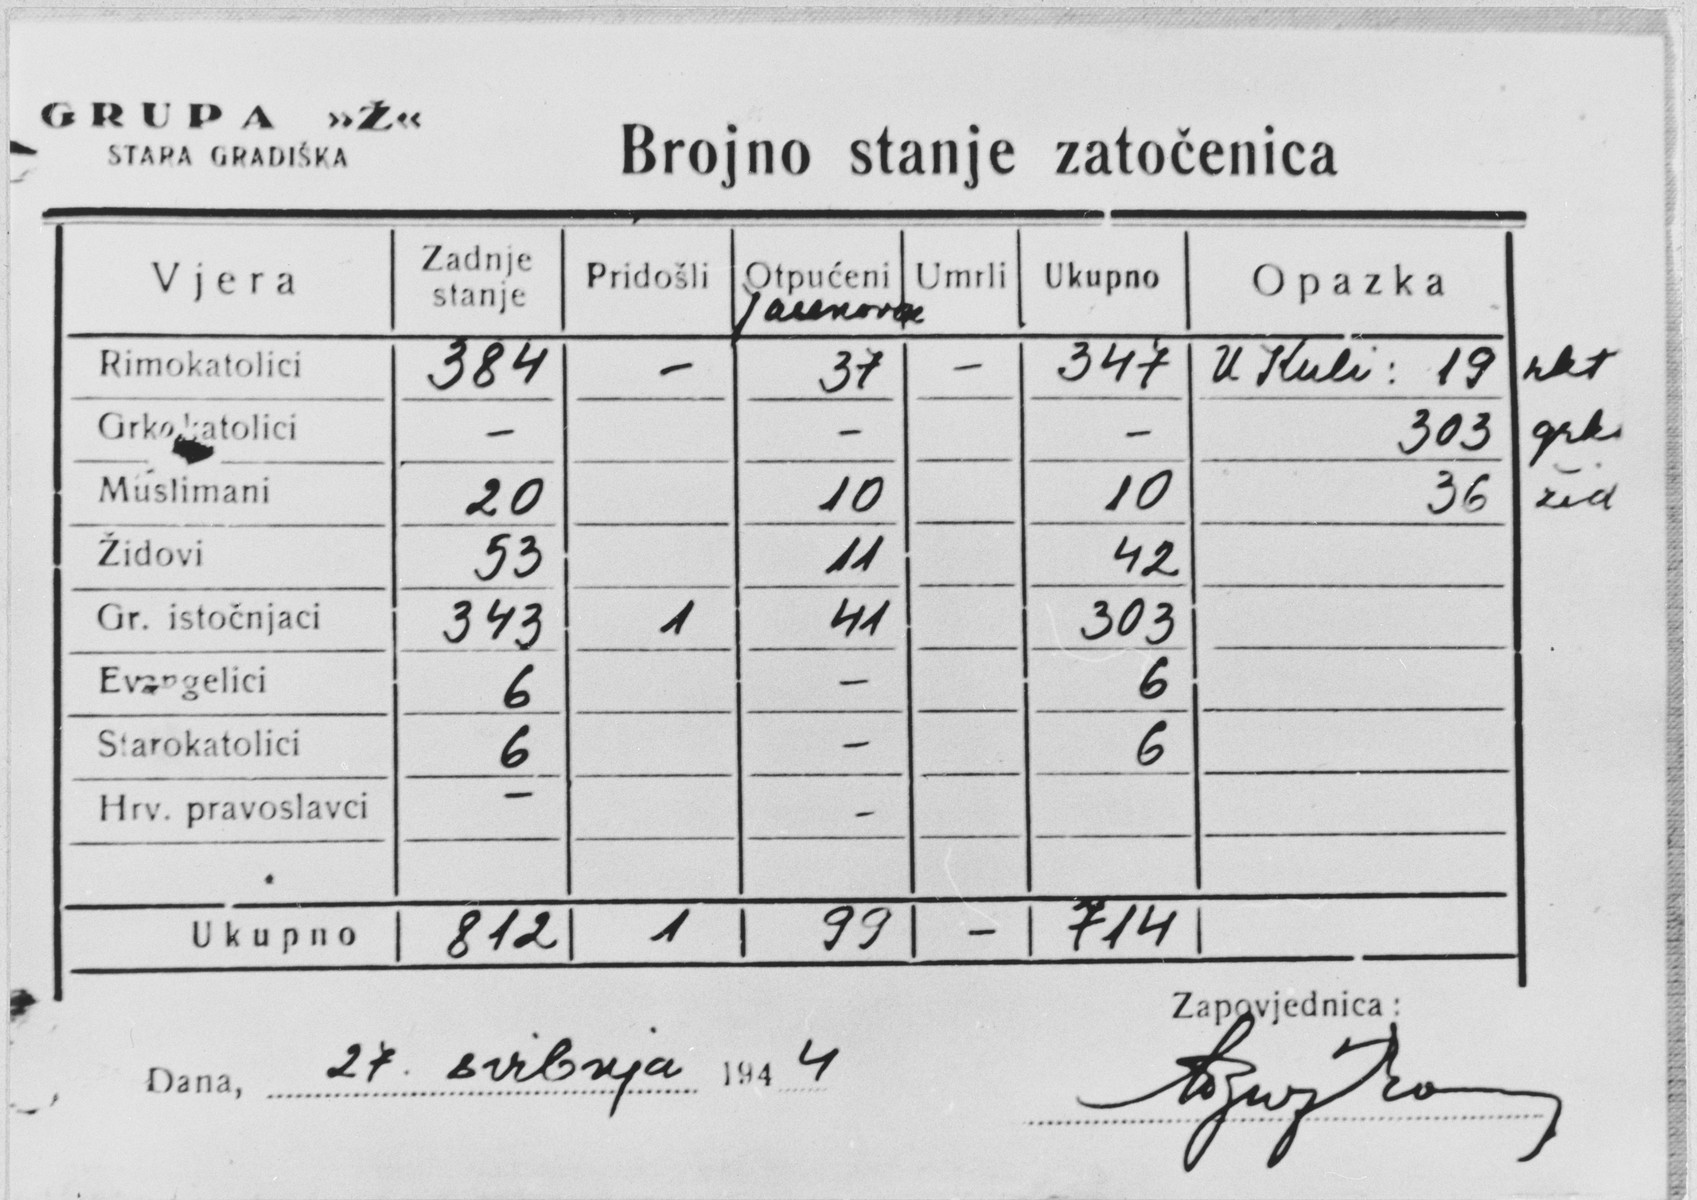 Chart dated May 27, 1944, that tabulates the number and religious affiliation of female inmates interned at the Stara Gradiska concentration camp.  The religious categories listed are Roman Catholic, Greek Catholic, Muslim, Jewish, Greek Orthodox, Protestant, Old Catholic, and Croatian Orthodox.  Of the 812 women counted, 99 were deported to the Jasenovac concentration camp, leaving a total of 714 in Stara Gradiska.